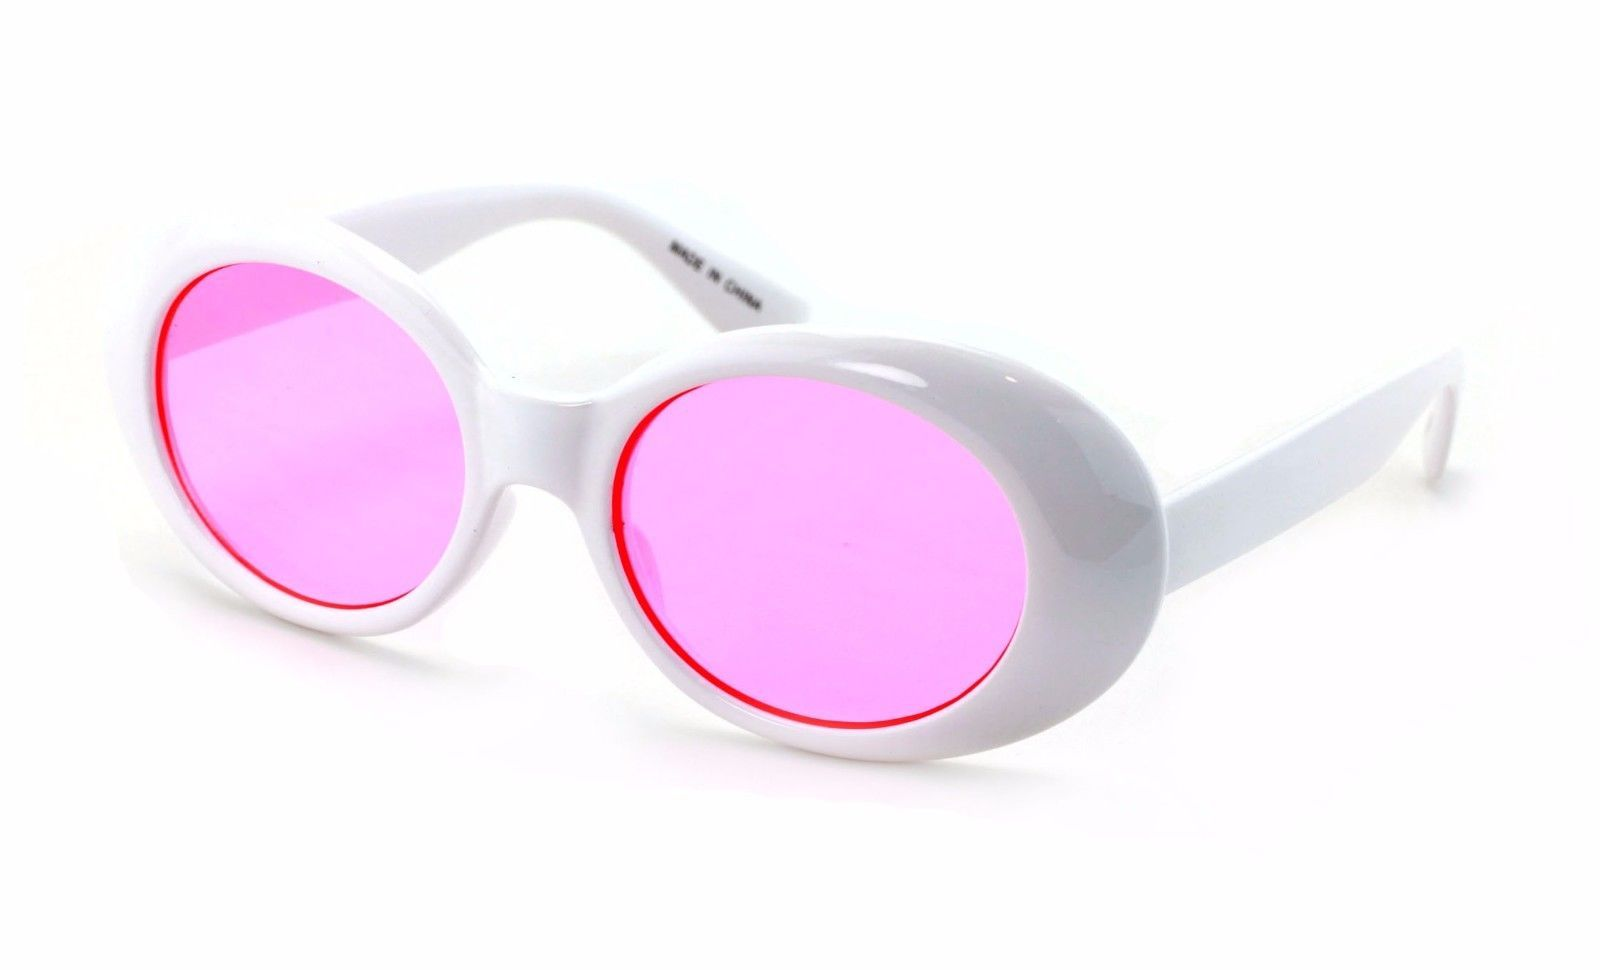 fef01859c0f5a White Bold Retro Oval Mod Thick Frame Sunglasses Clout Goggles Round Lens  Pink